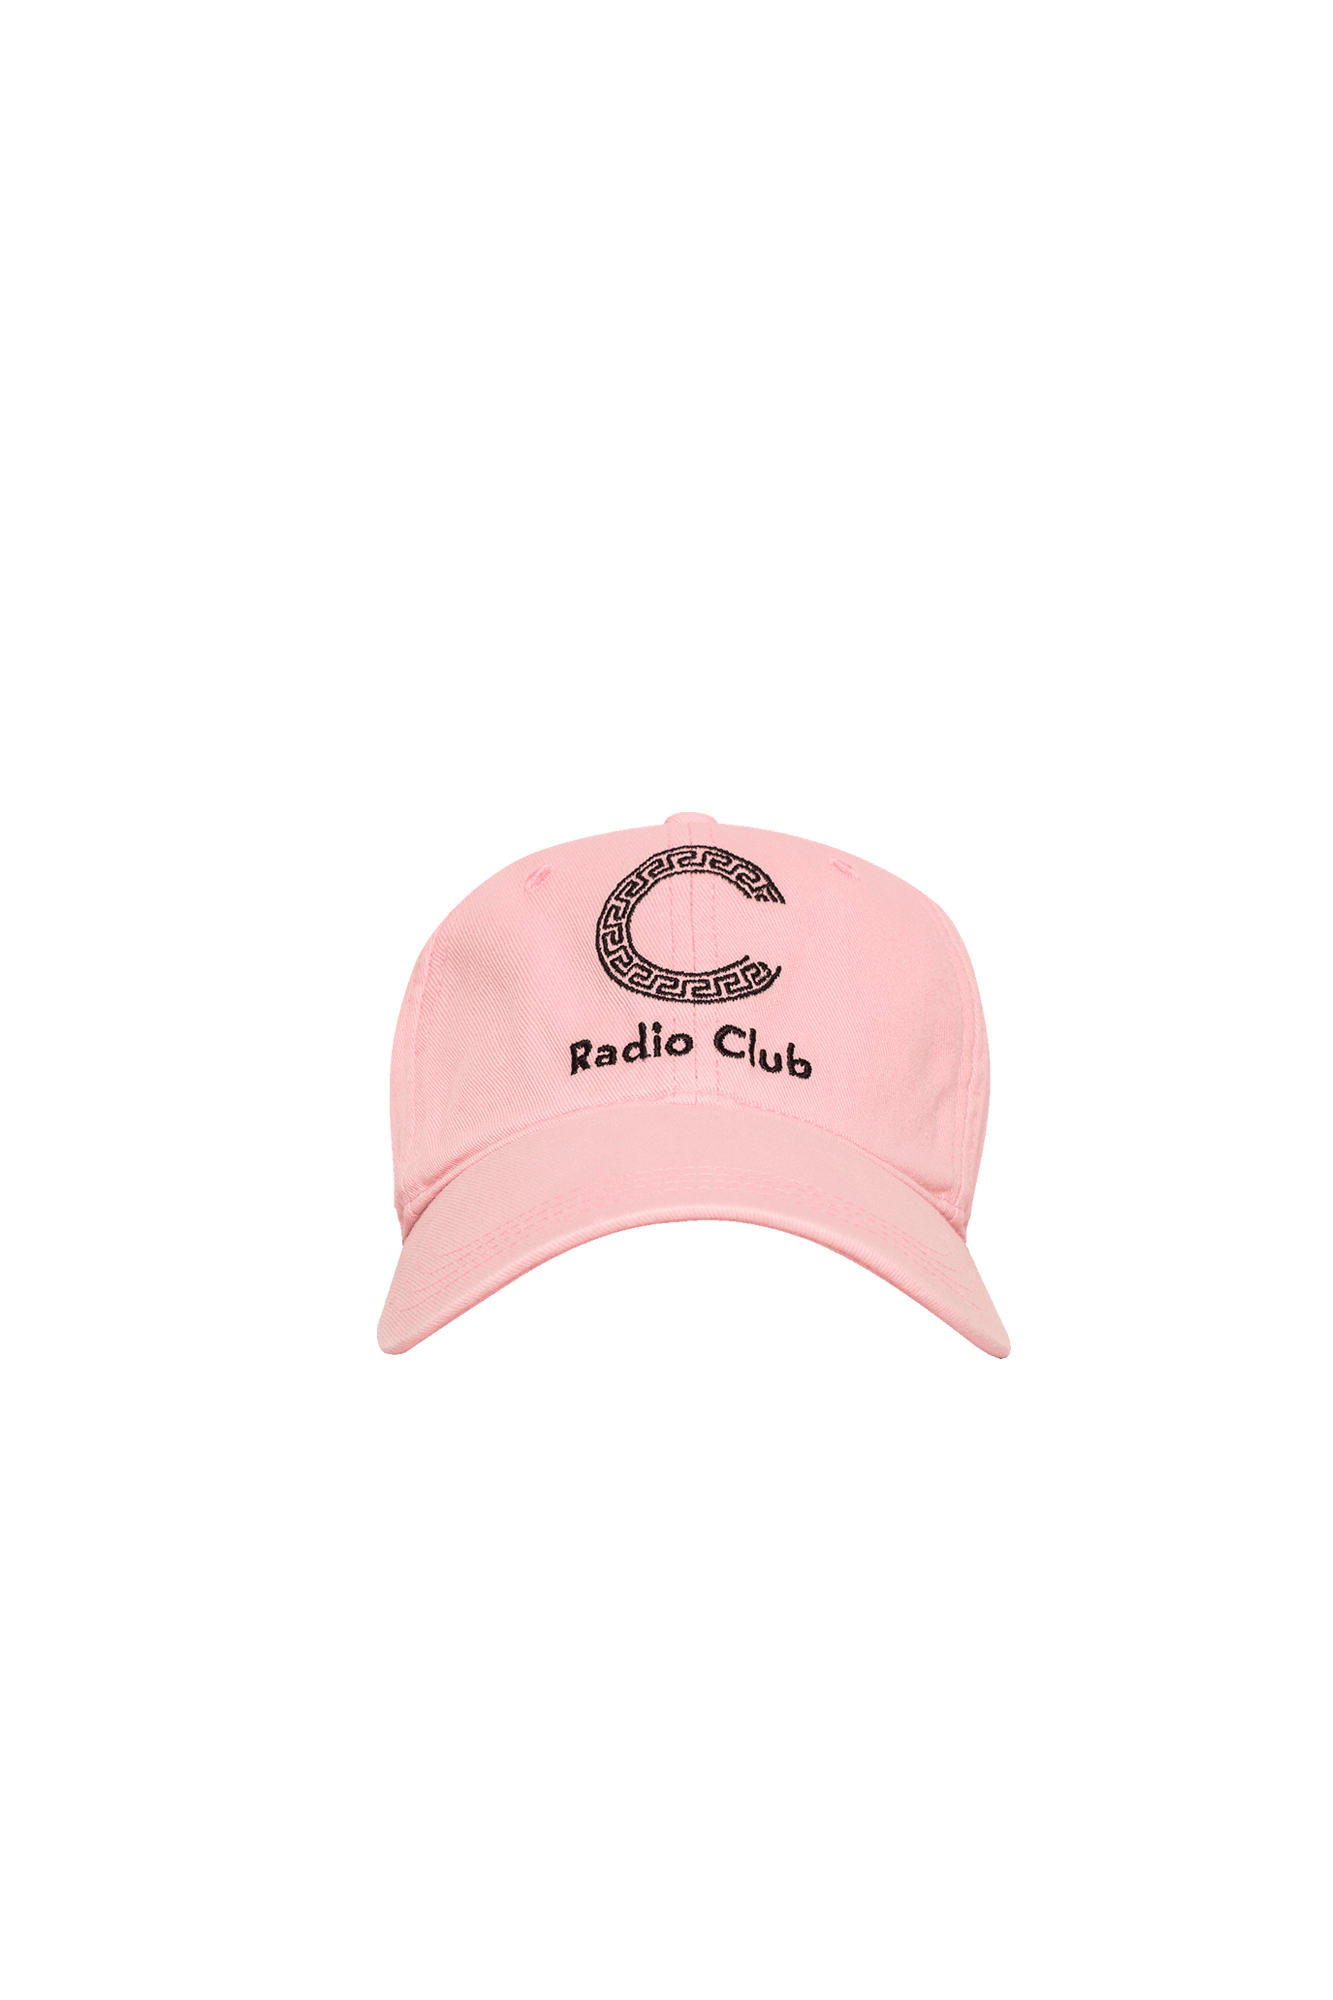 Hats P.A.M. x Carhartt WIP Radio Club Logo Cap Pink - One Block Down